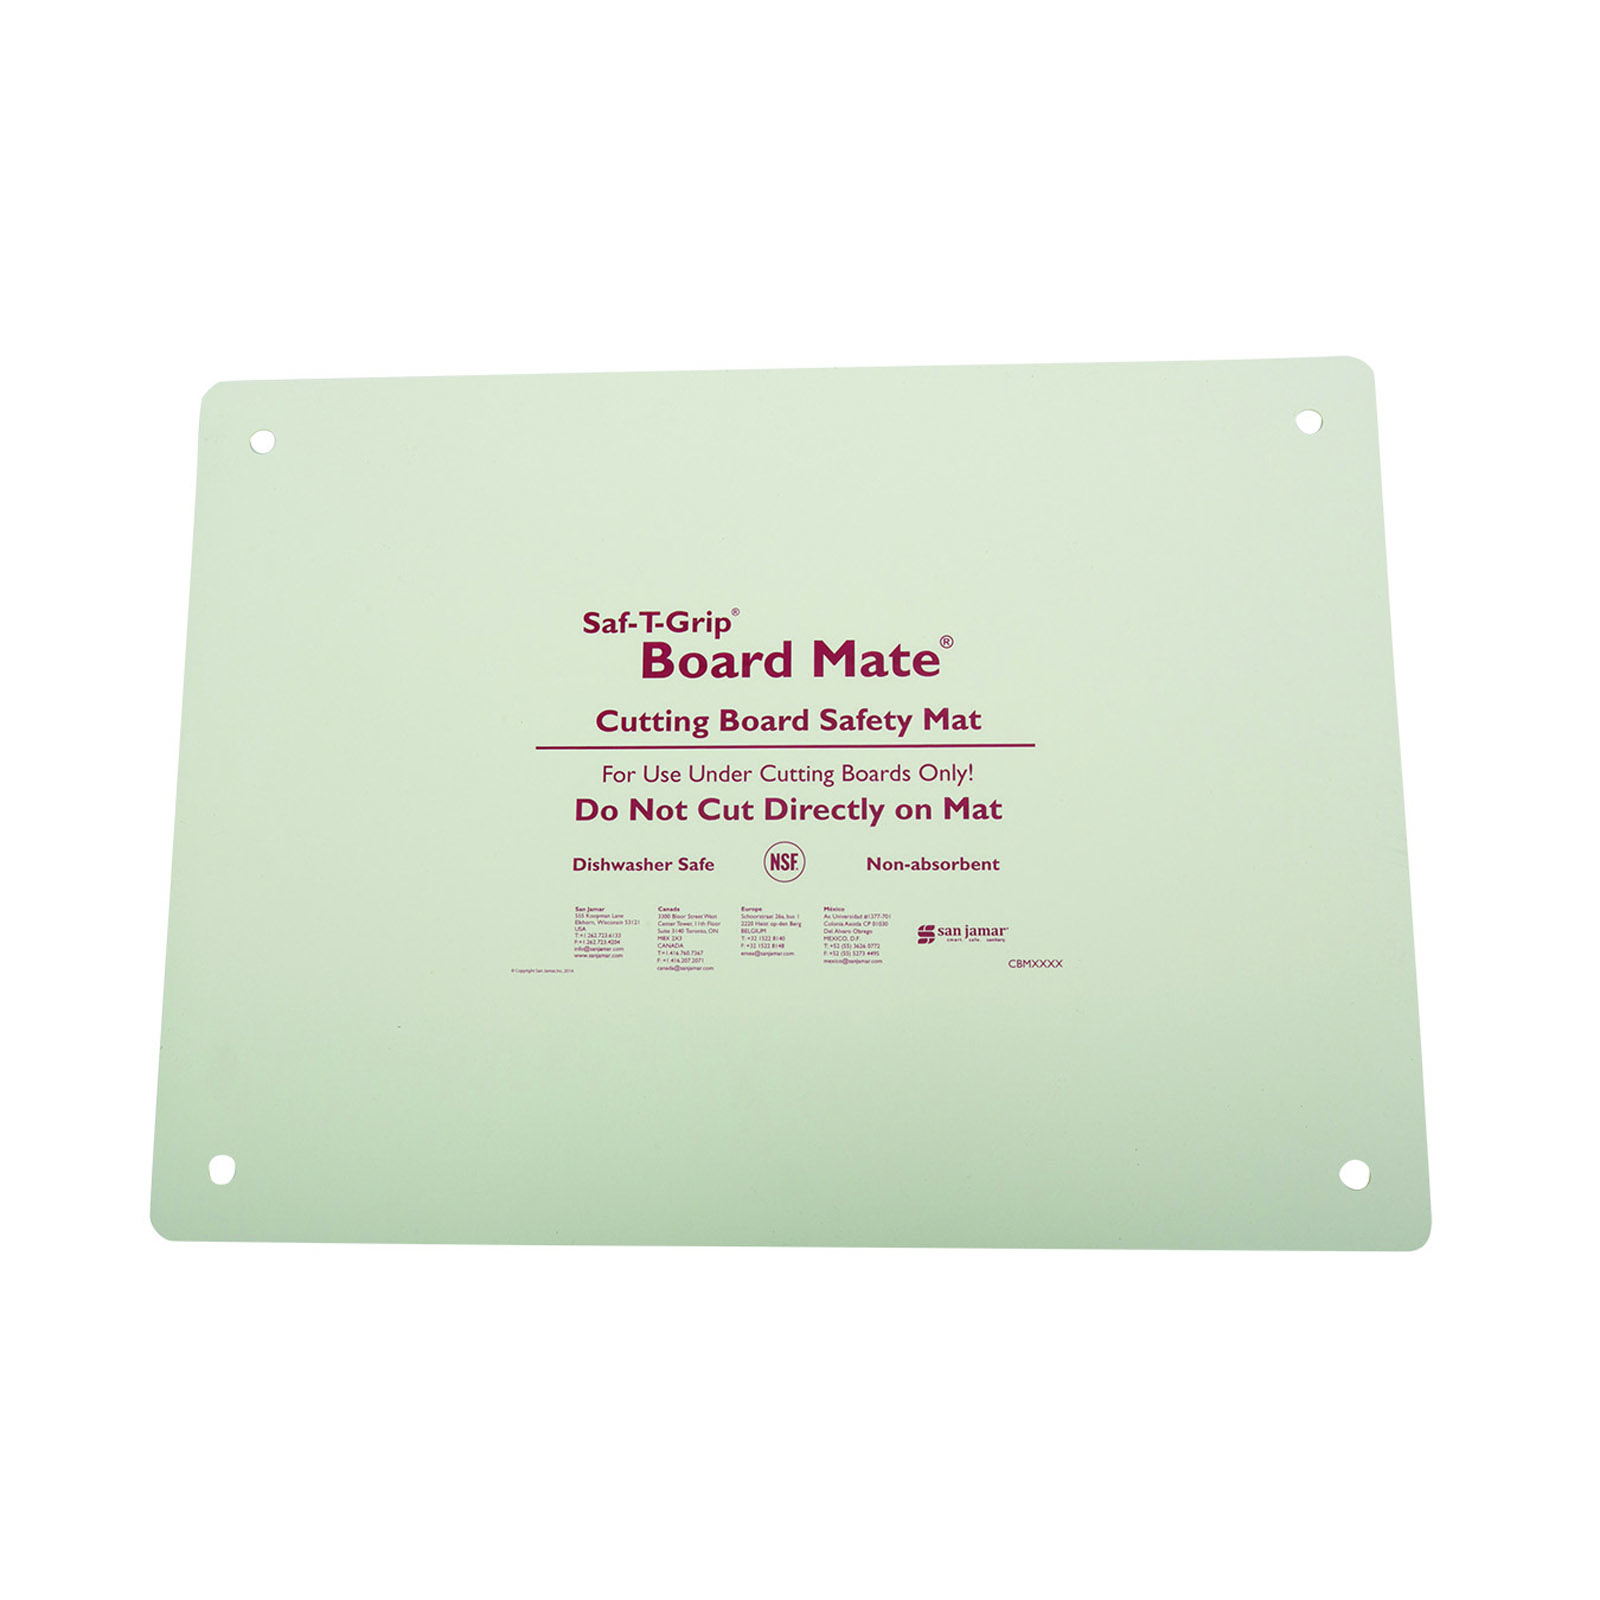 San Jamar CBM1622 cutting board mat